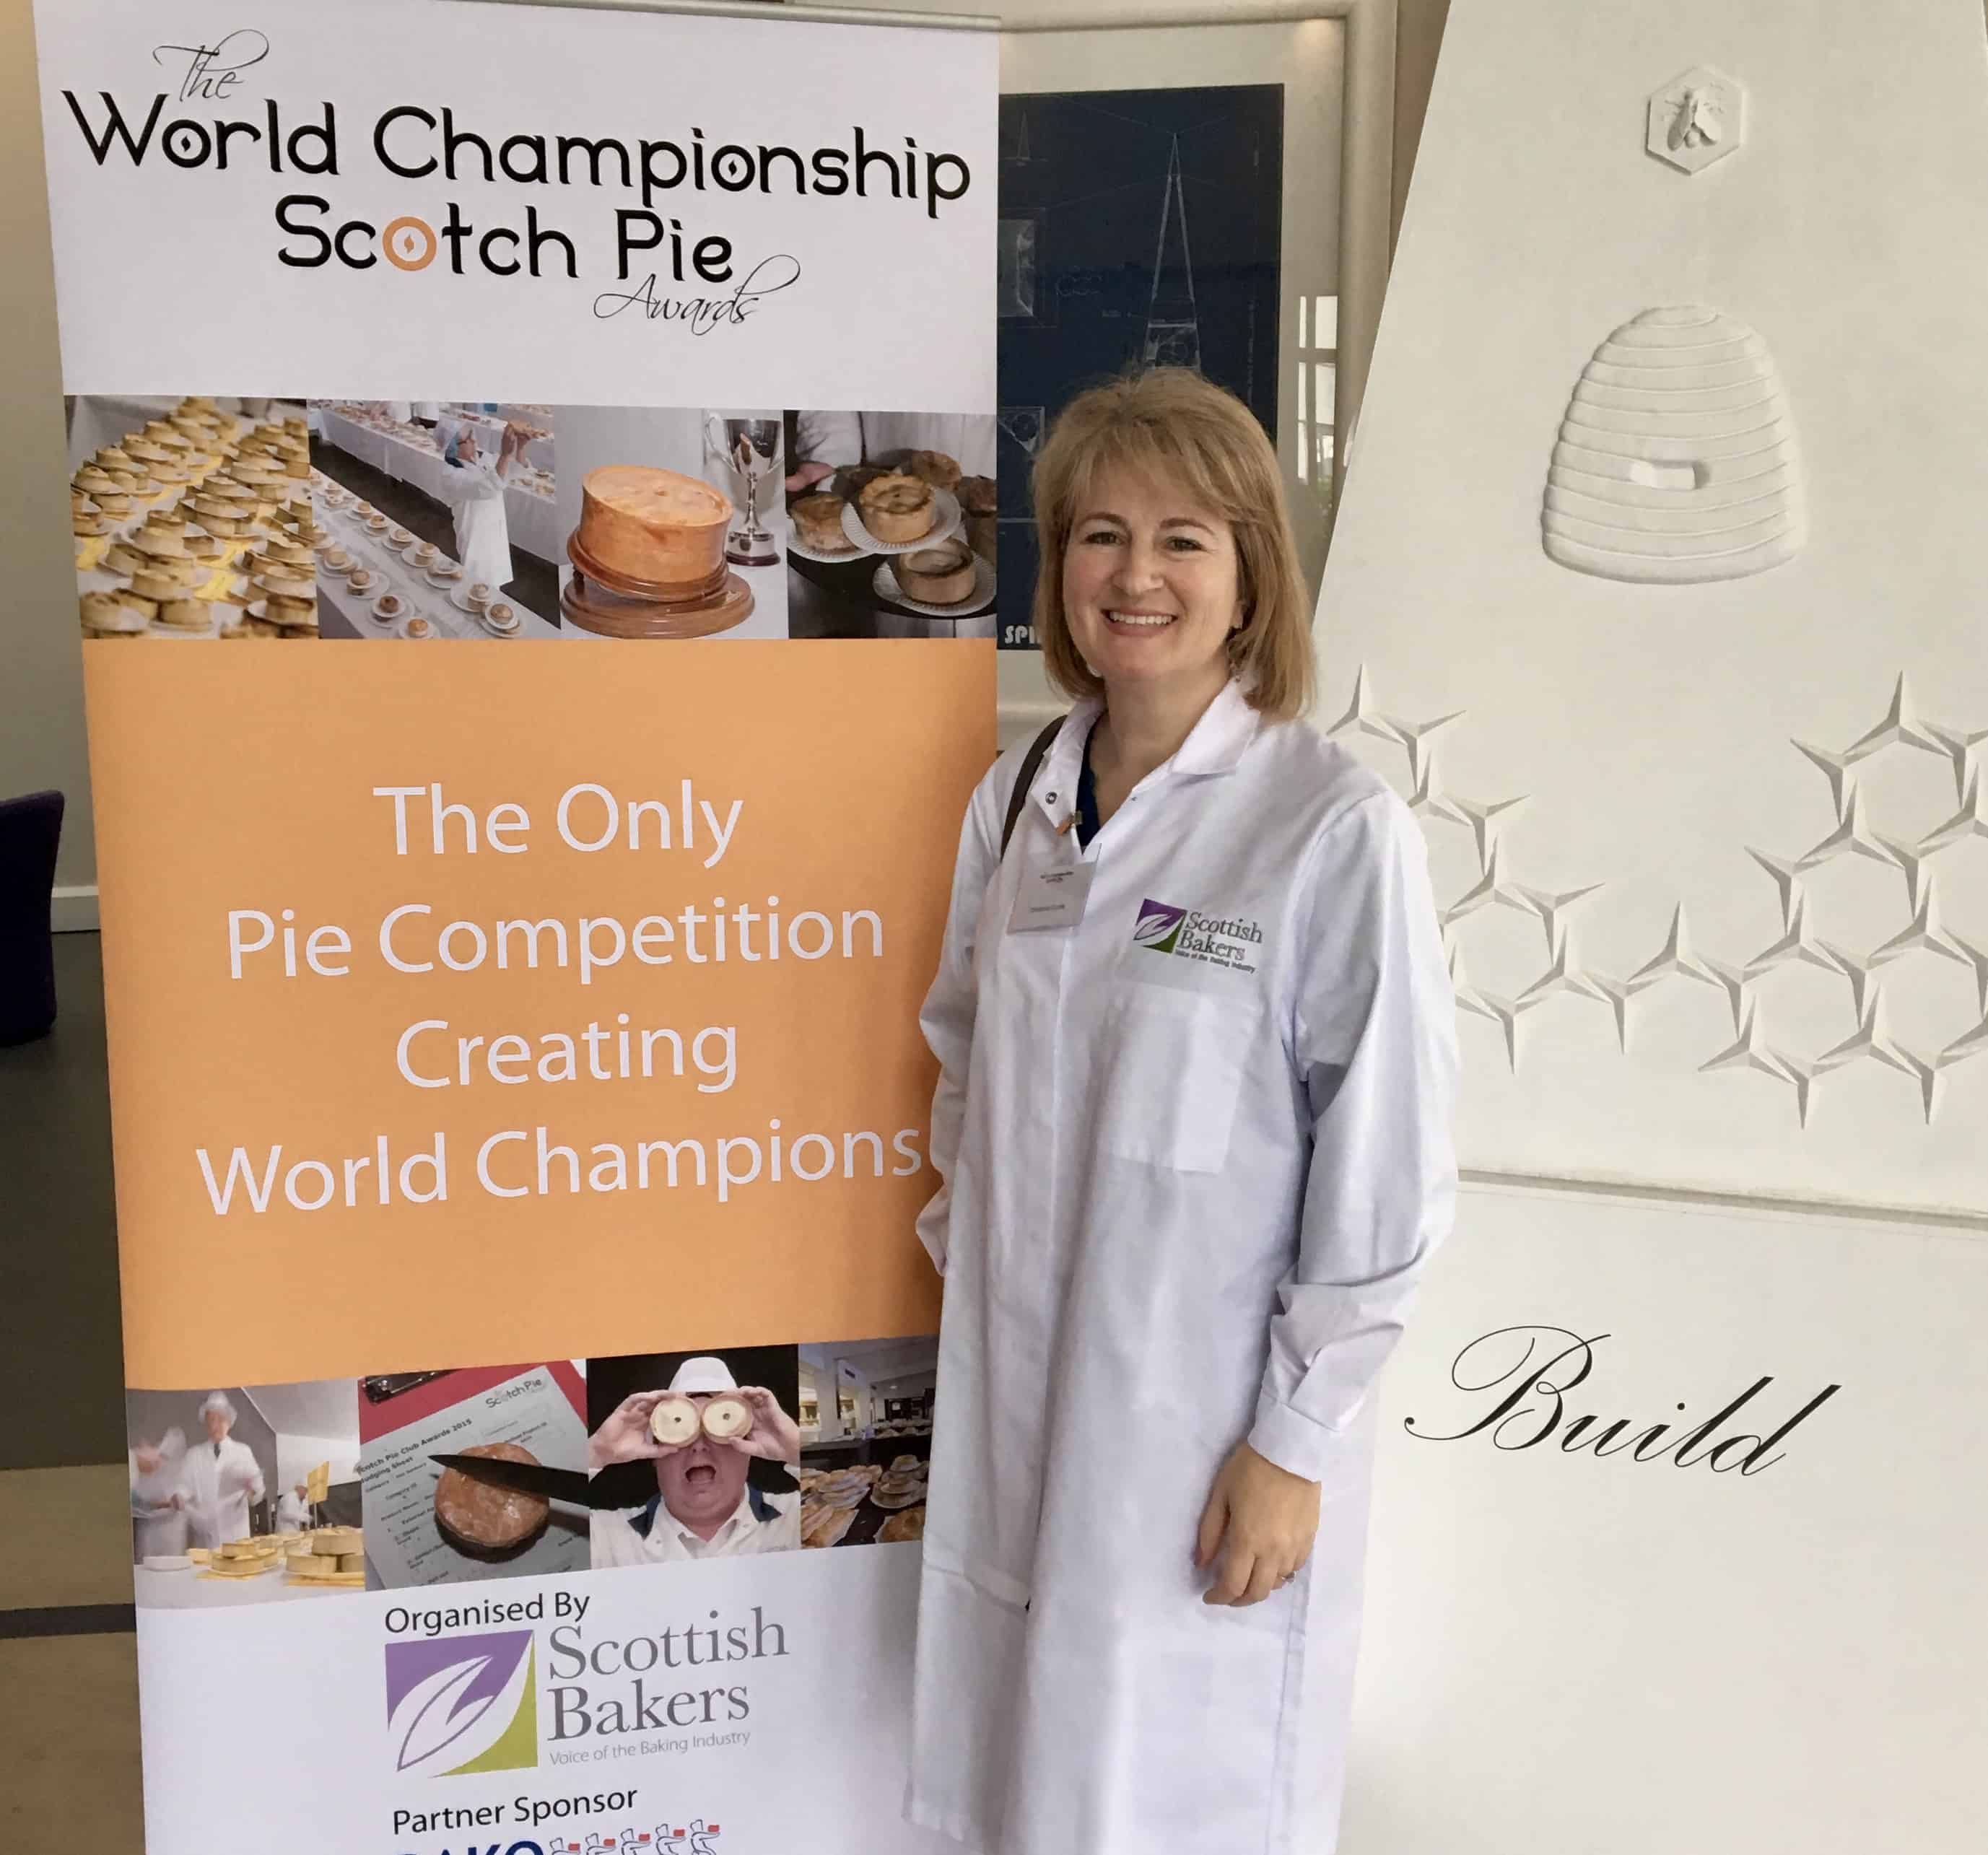 Christina Conte, judge at the World Championships for Scotch Pie work with Christina's Cucina